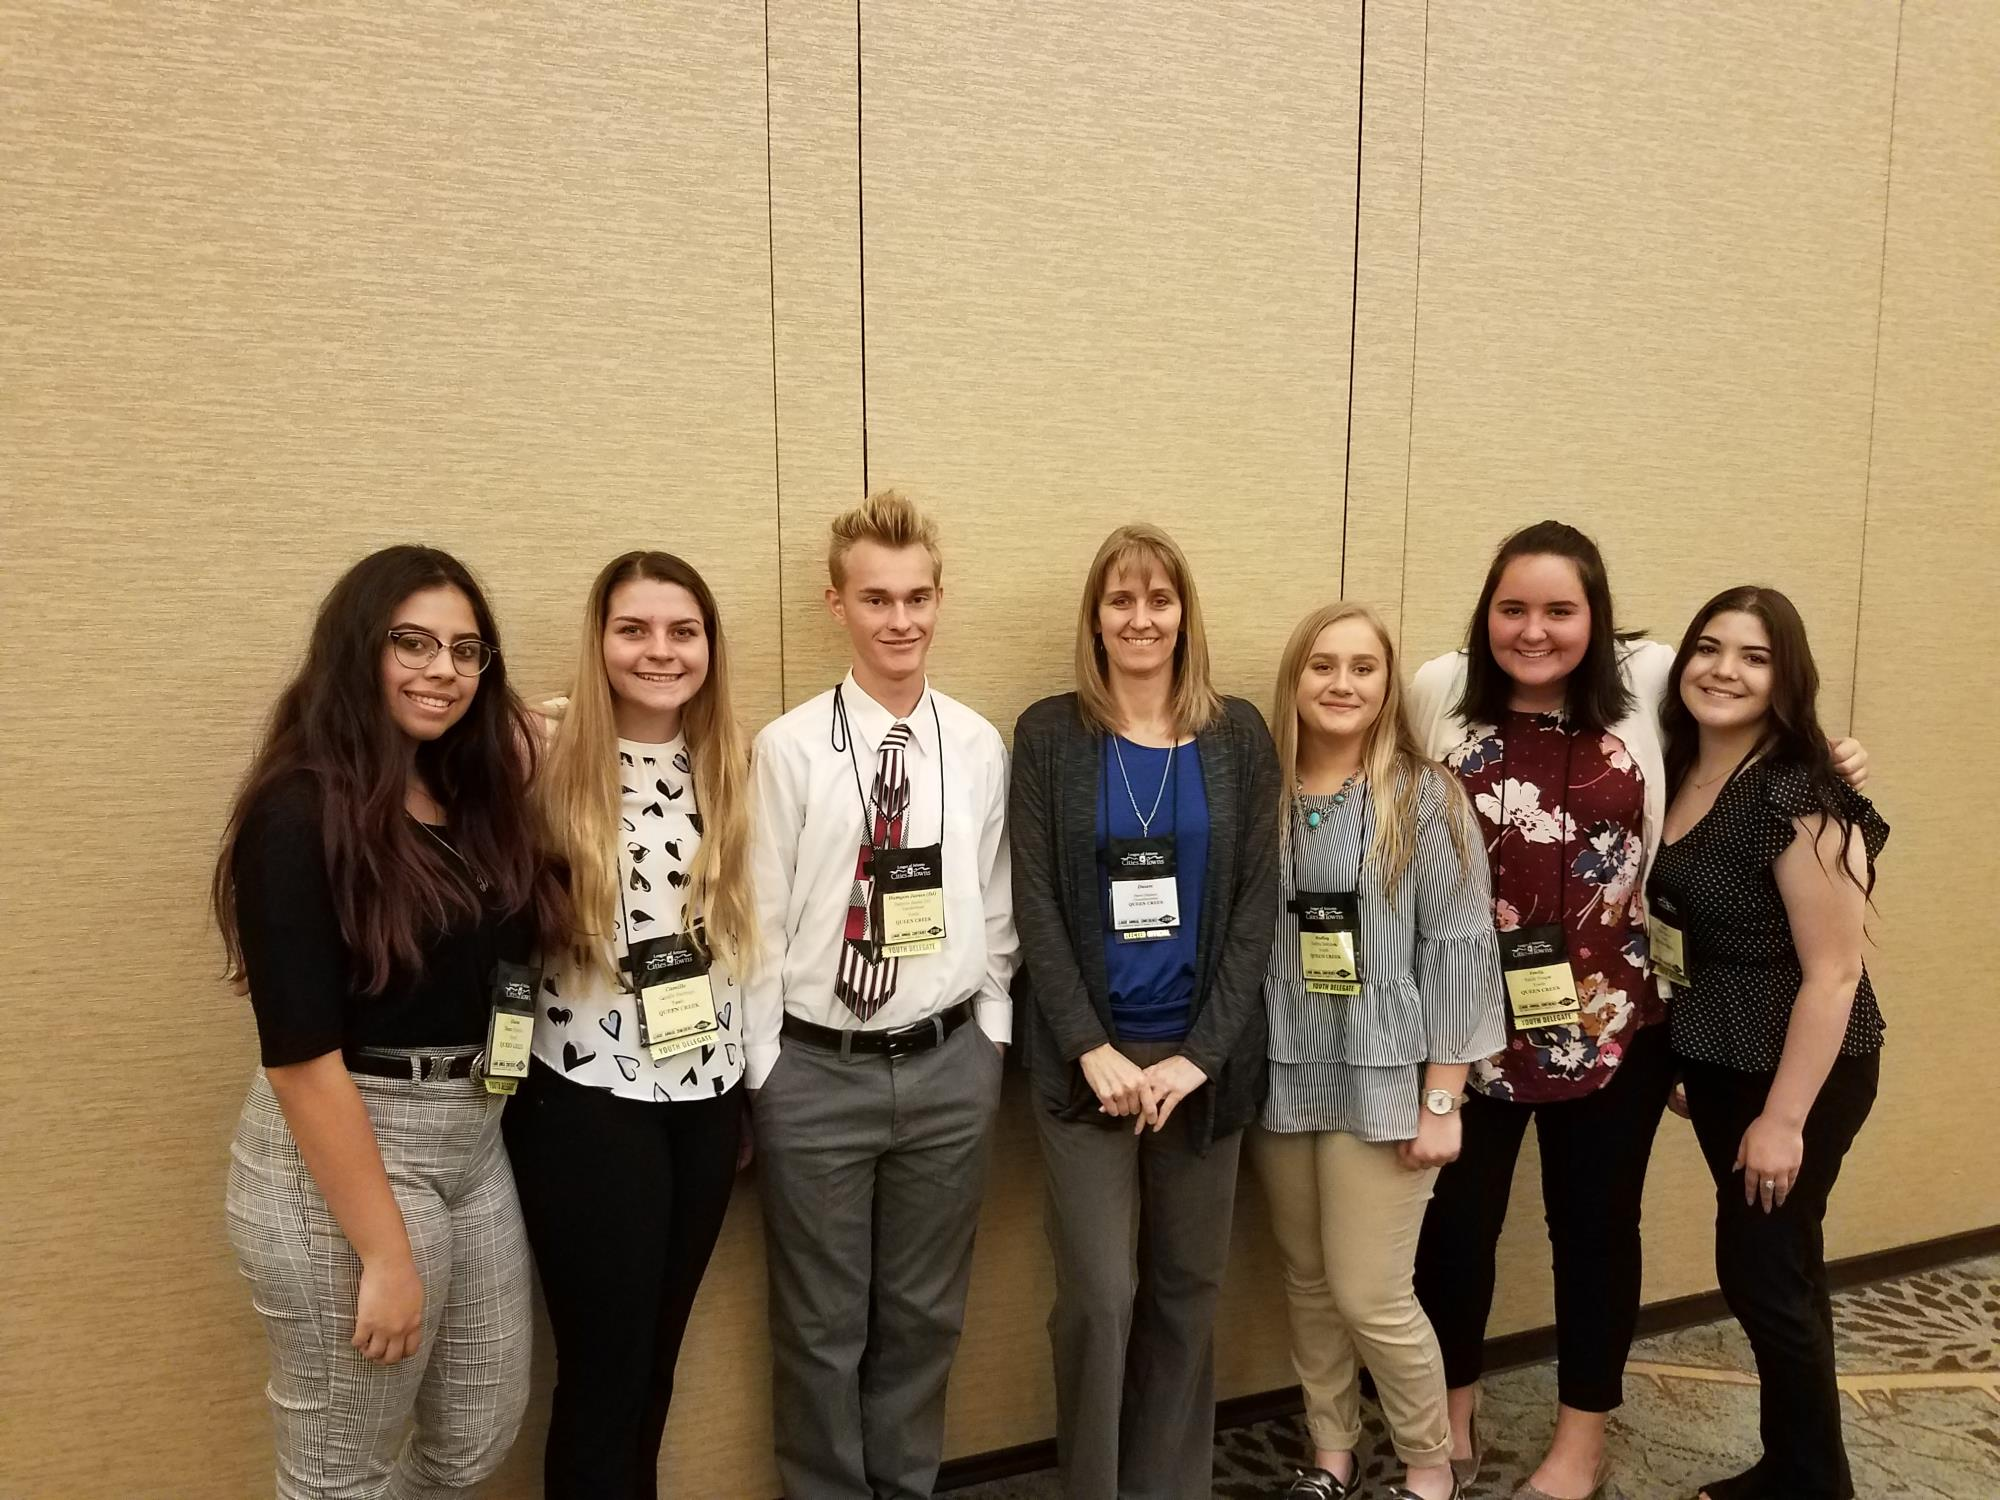 Council Member Oliphant with the Youth Advisory Council at the League of Arizona Cities and Towns Youth Delegate Luncheon on August 22